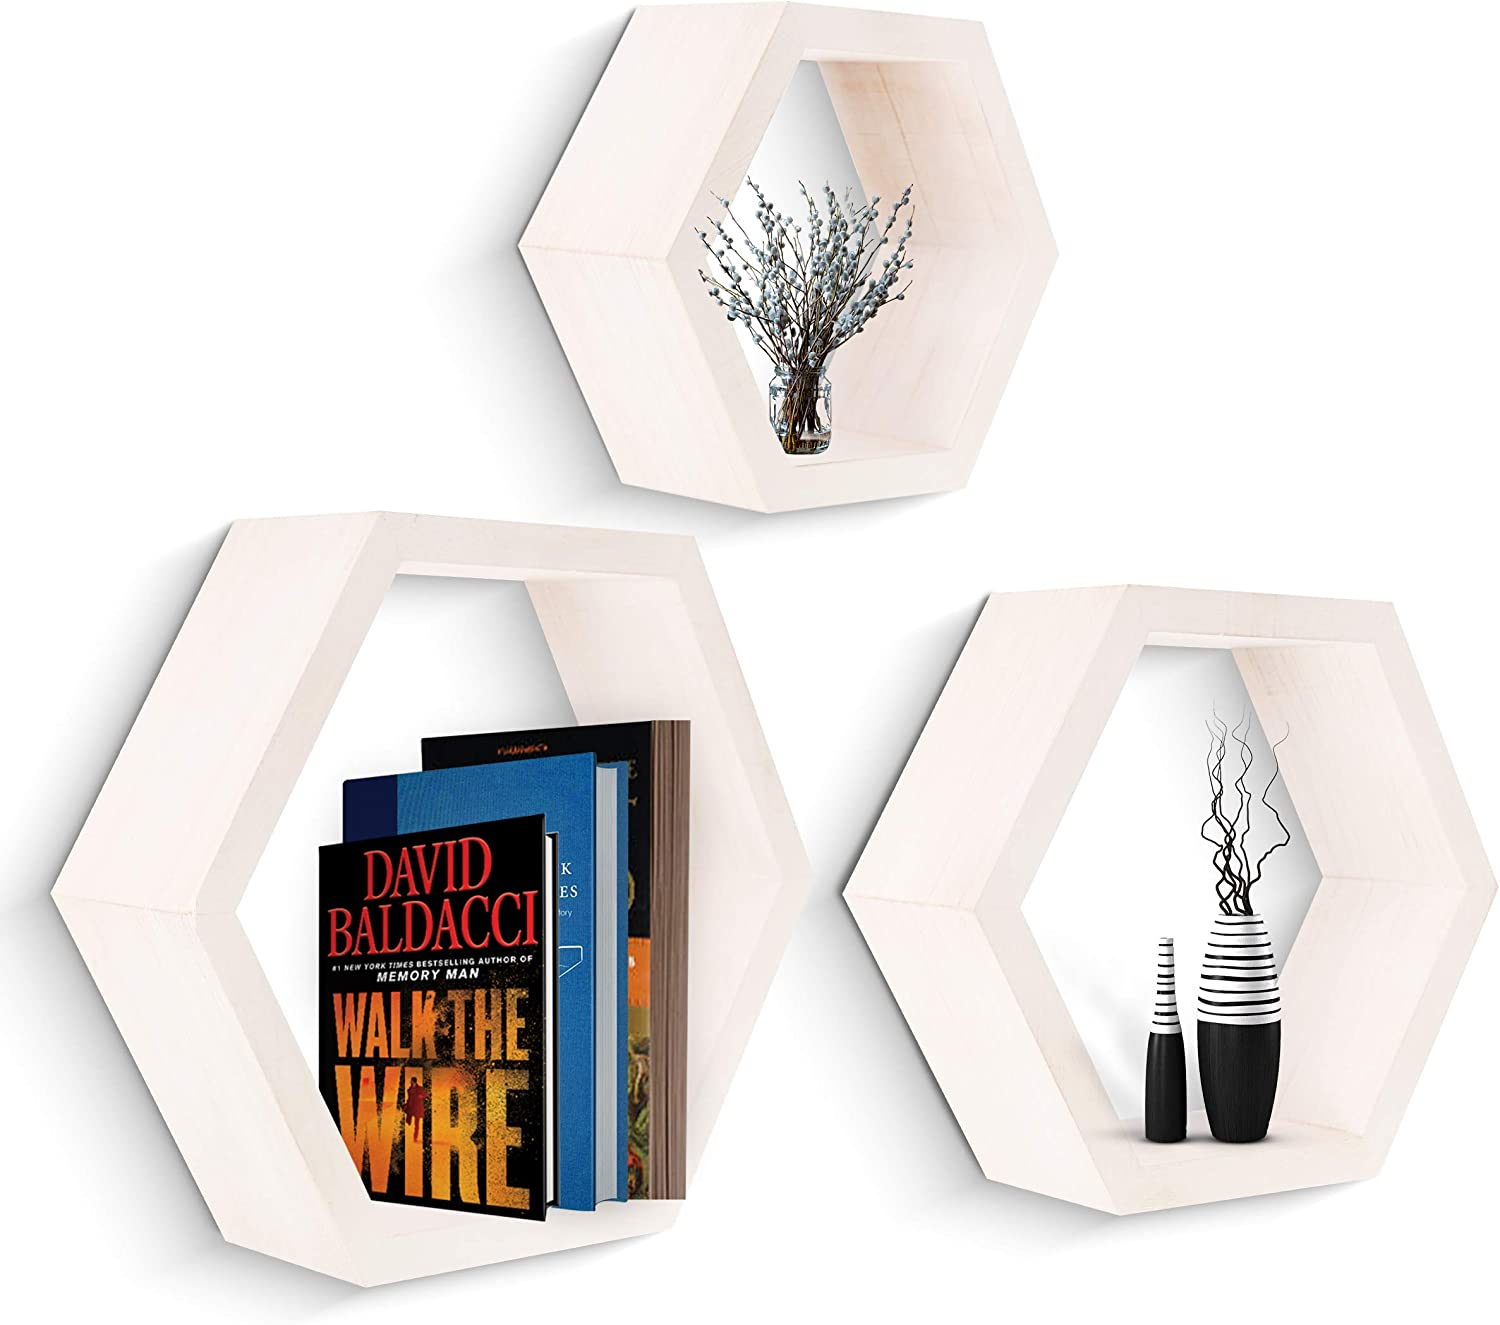 Onyx Home Hexagon Floating Shelves - Set of 3, Rustic Wall Decor, Solid Hardwood Construction, Honeycomb Layout, True Floating Wall Mounted Hexagonal Shelf & No Visible Screw, All Accessories Included